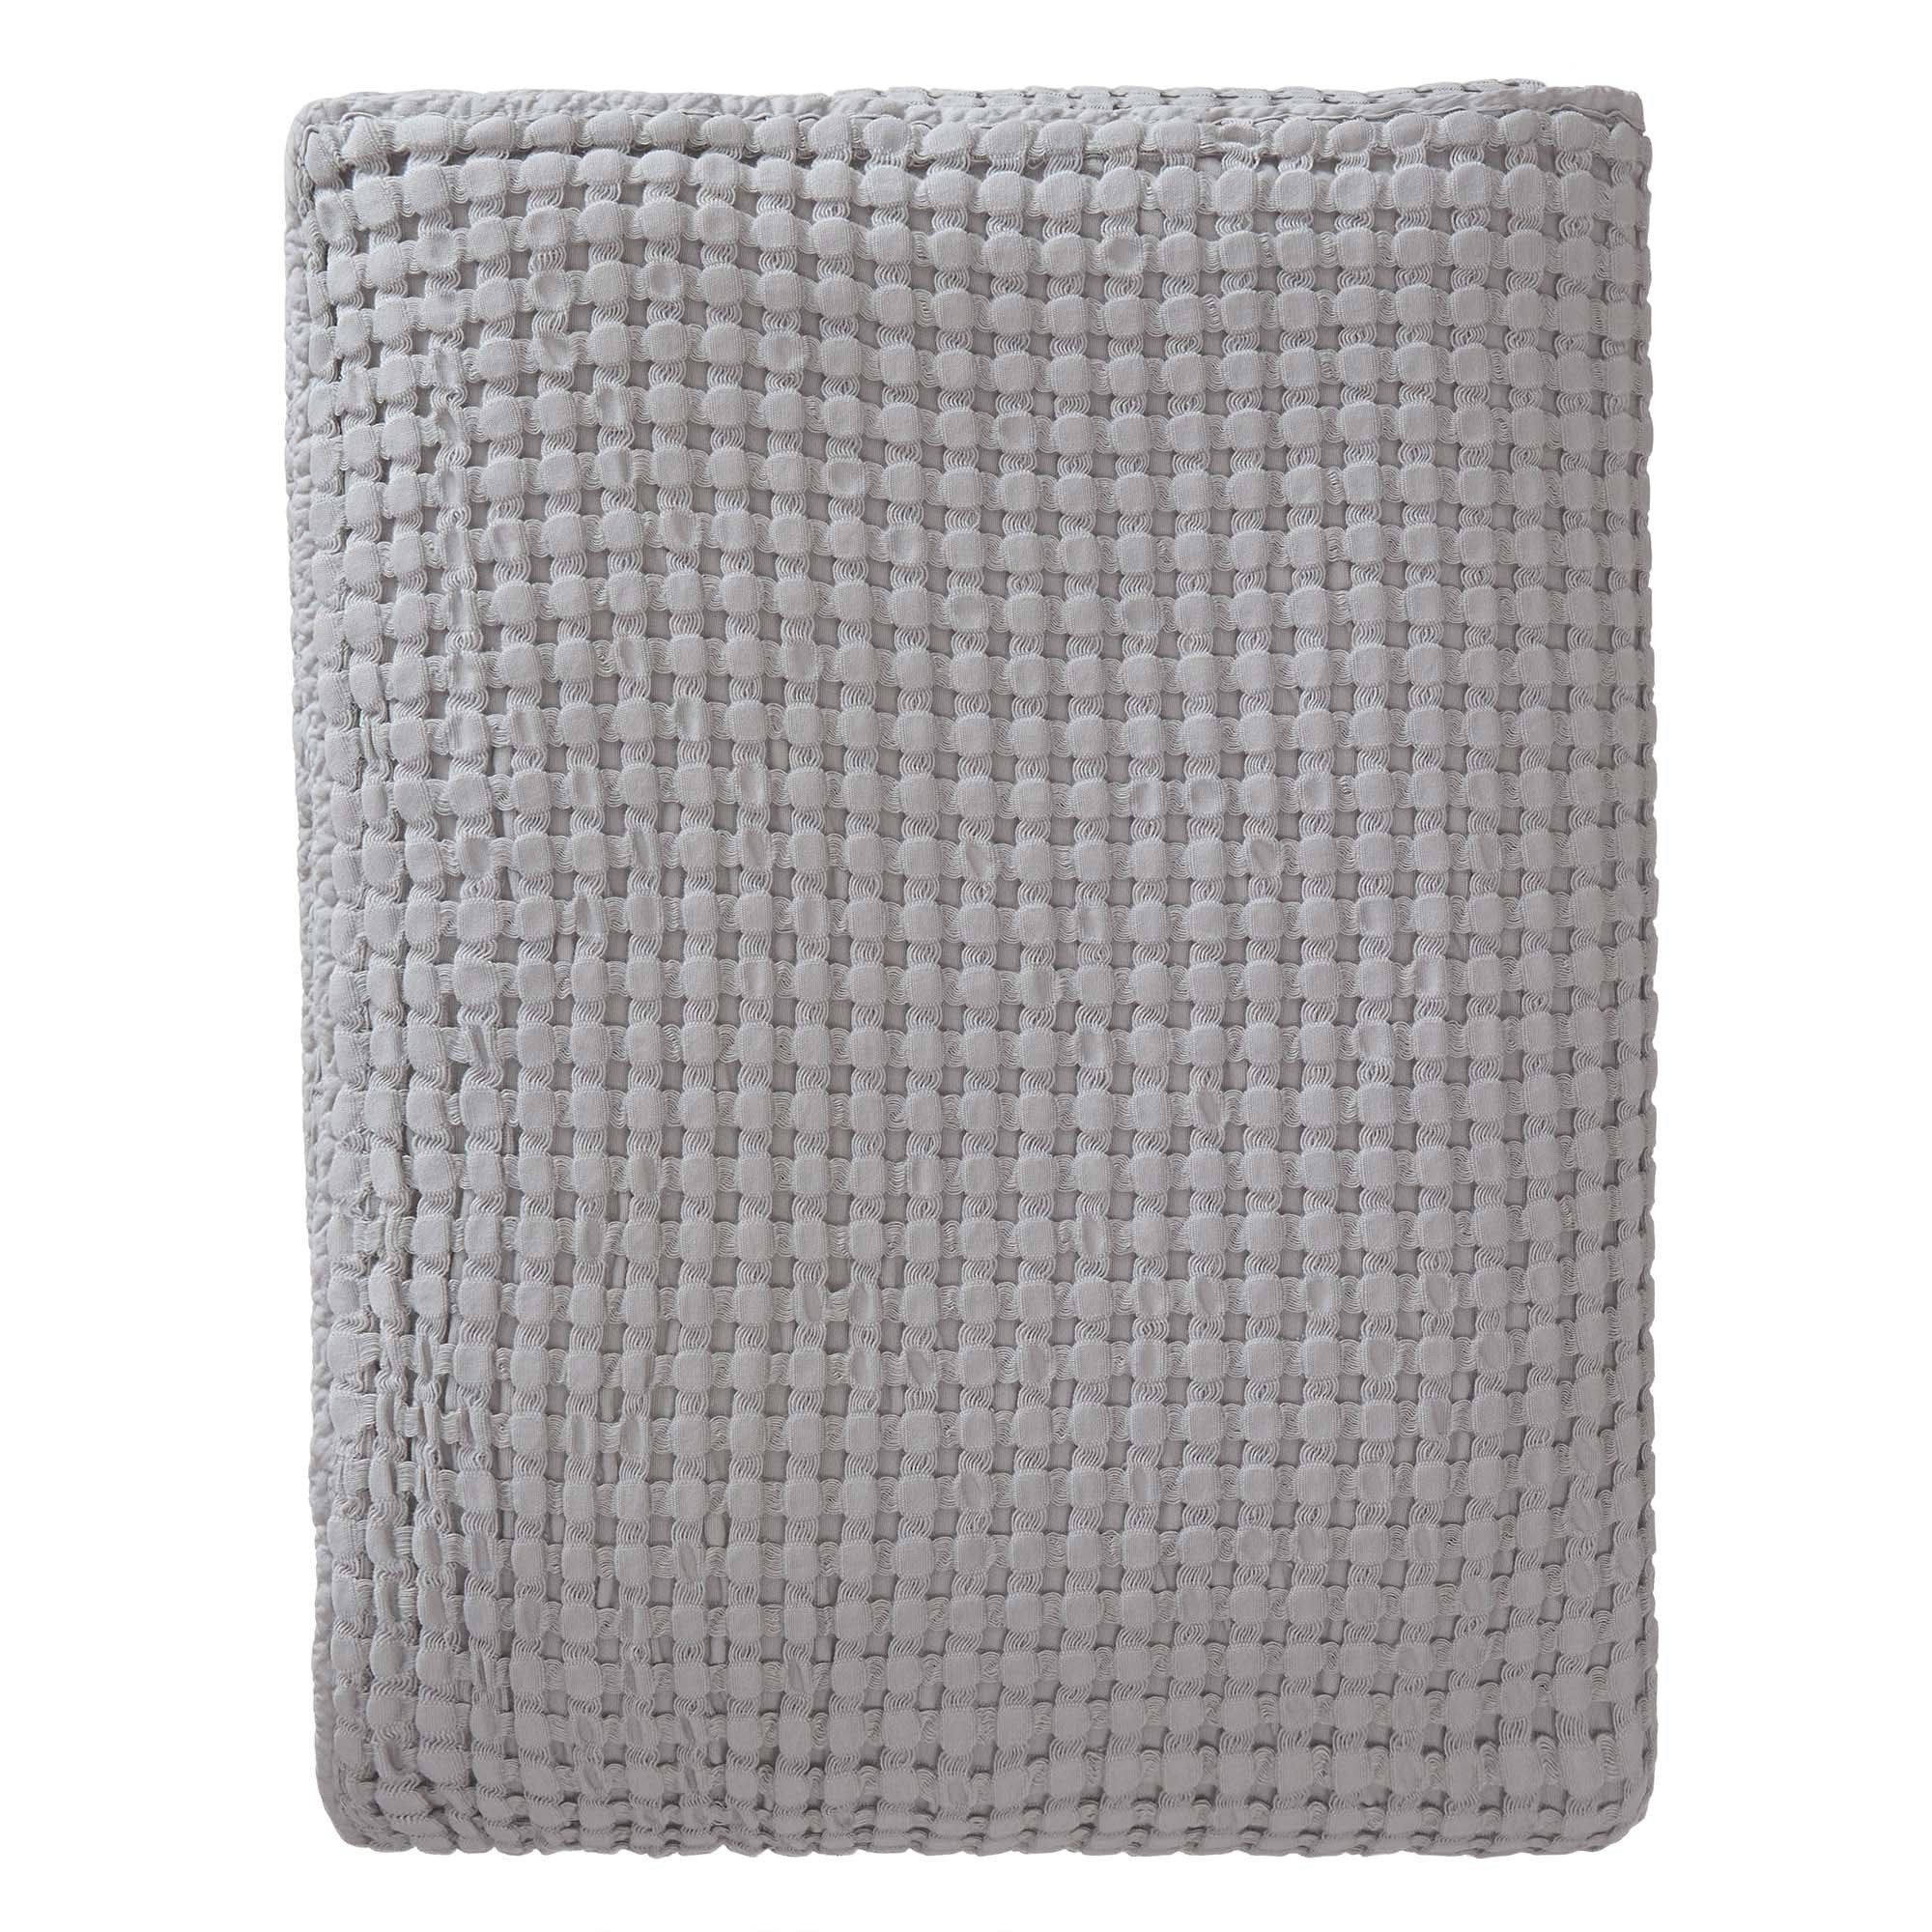 Veiros bedspread, light grey, 100% cotton